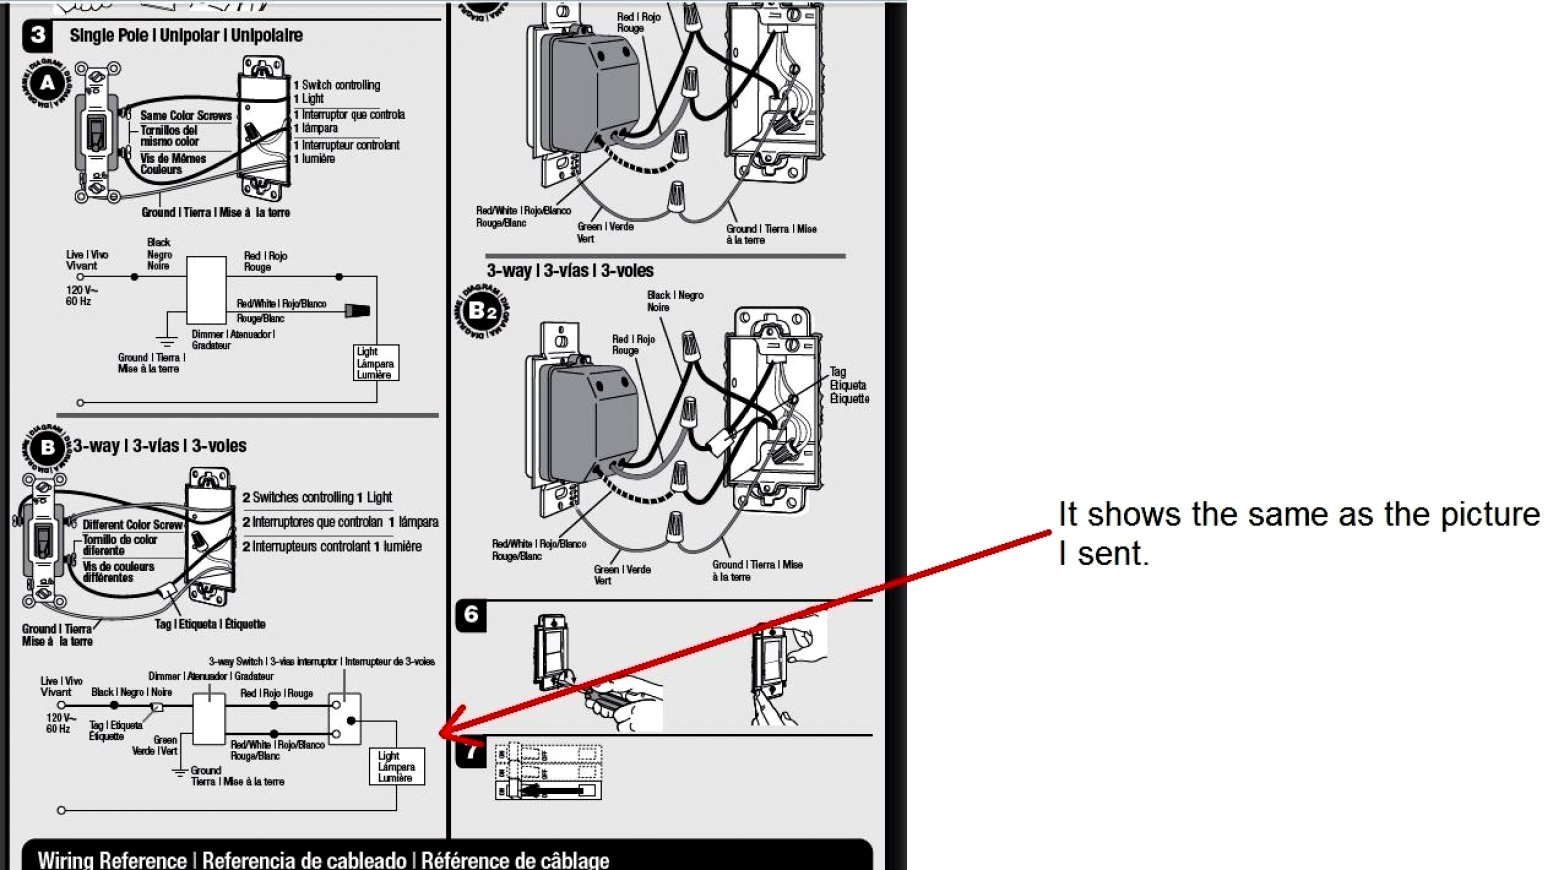 S2L Lutron Dimmer Switch Wiring Diagram | Manual E-Books - Lutron Maestro Wiring Diagram